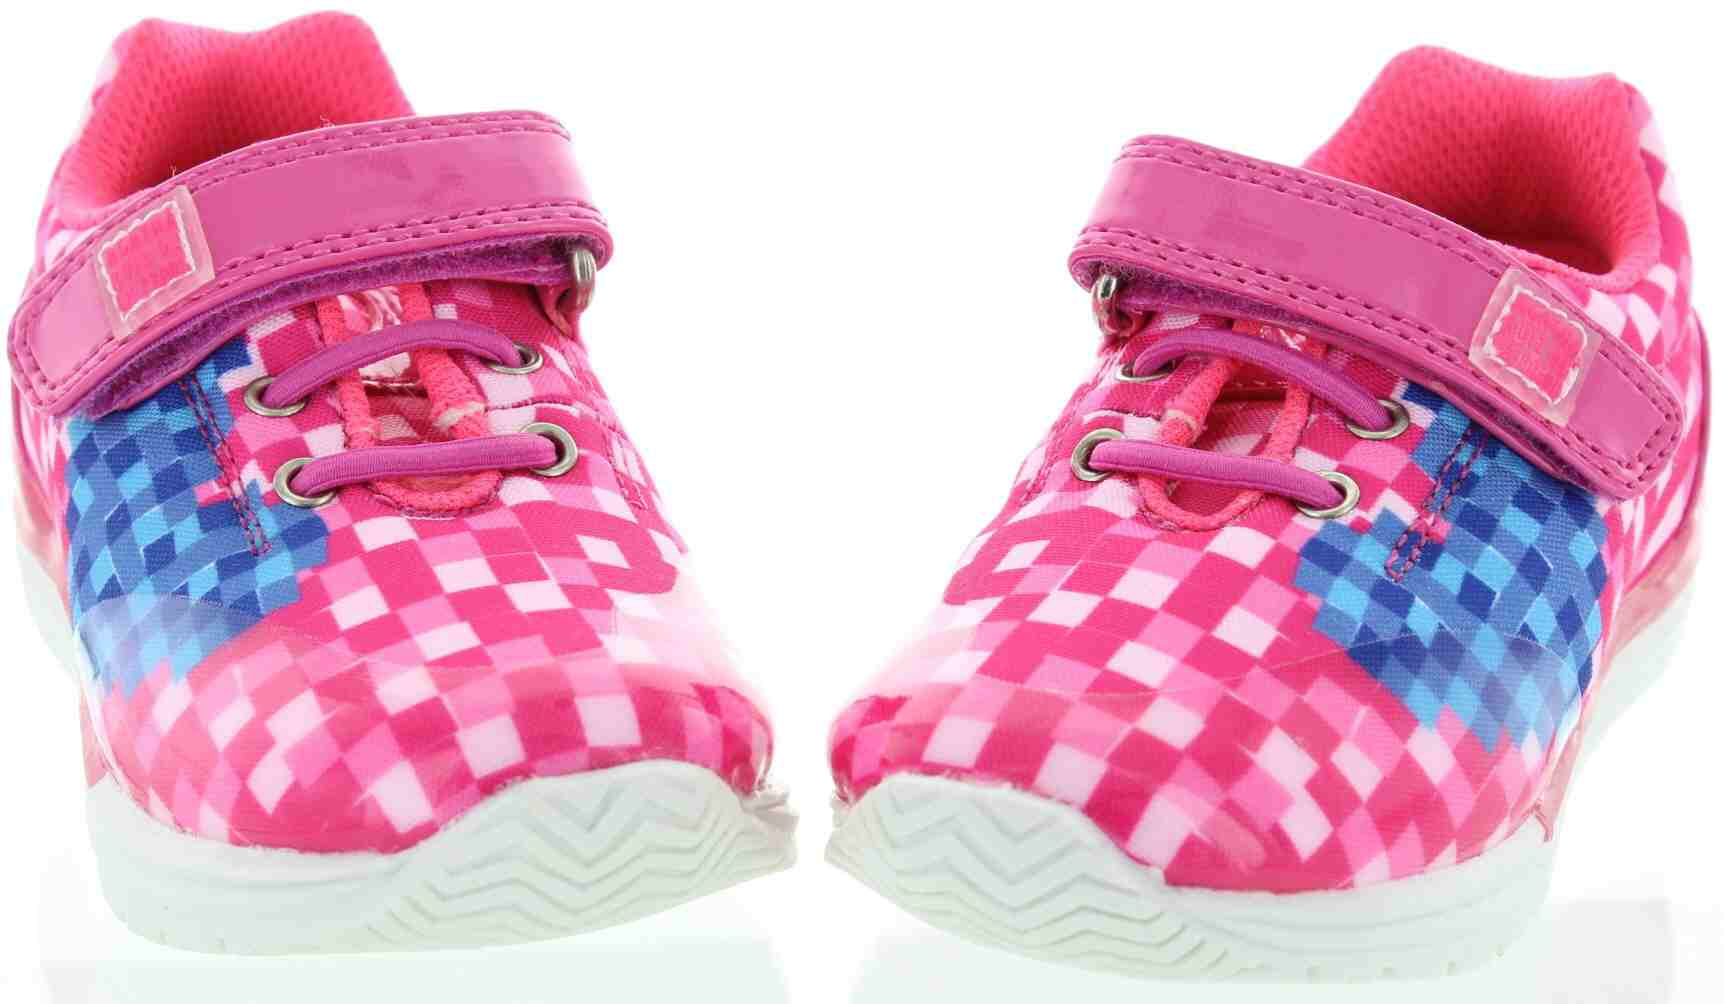 Toddlers with weak ankles shoes